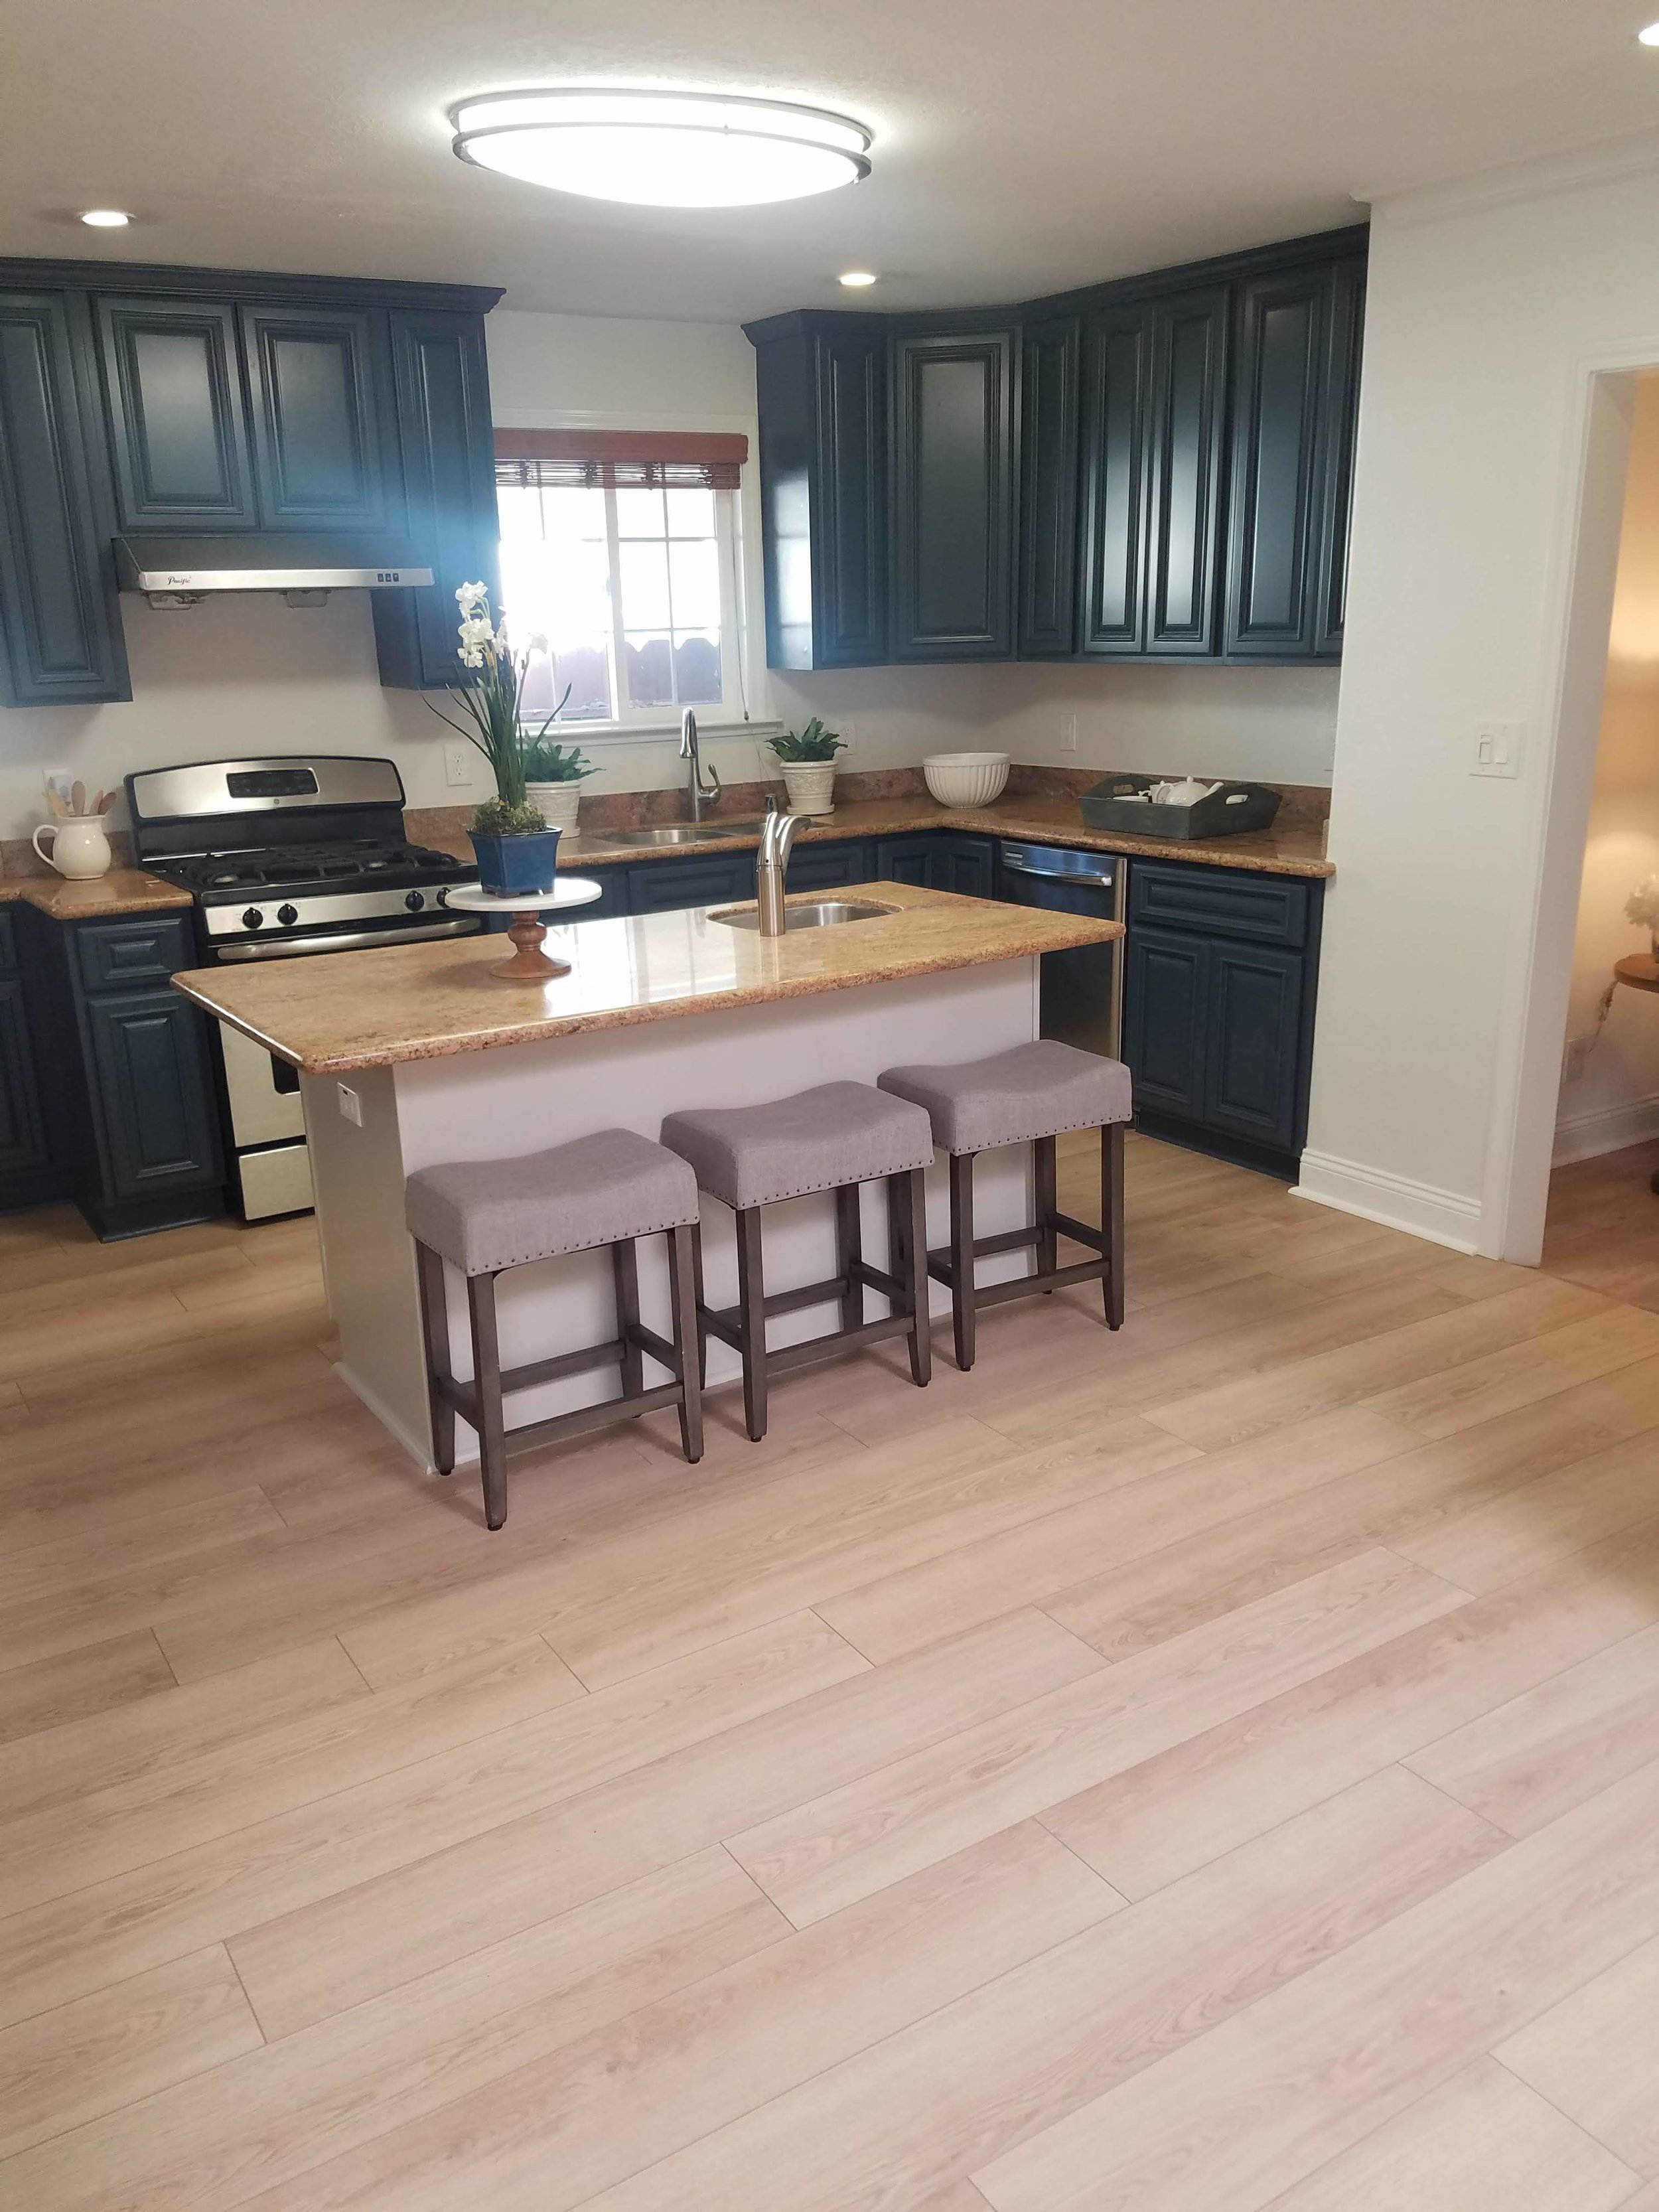 SAVE UP TO 30% ON ALL FLOORING! INCLUDES INSTALLATION! - Save up to 30% on all your flooring needs…carpet, laminate, hardwood, vinyl, etc. Installation included!